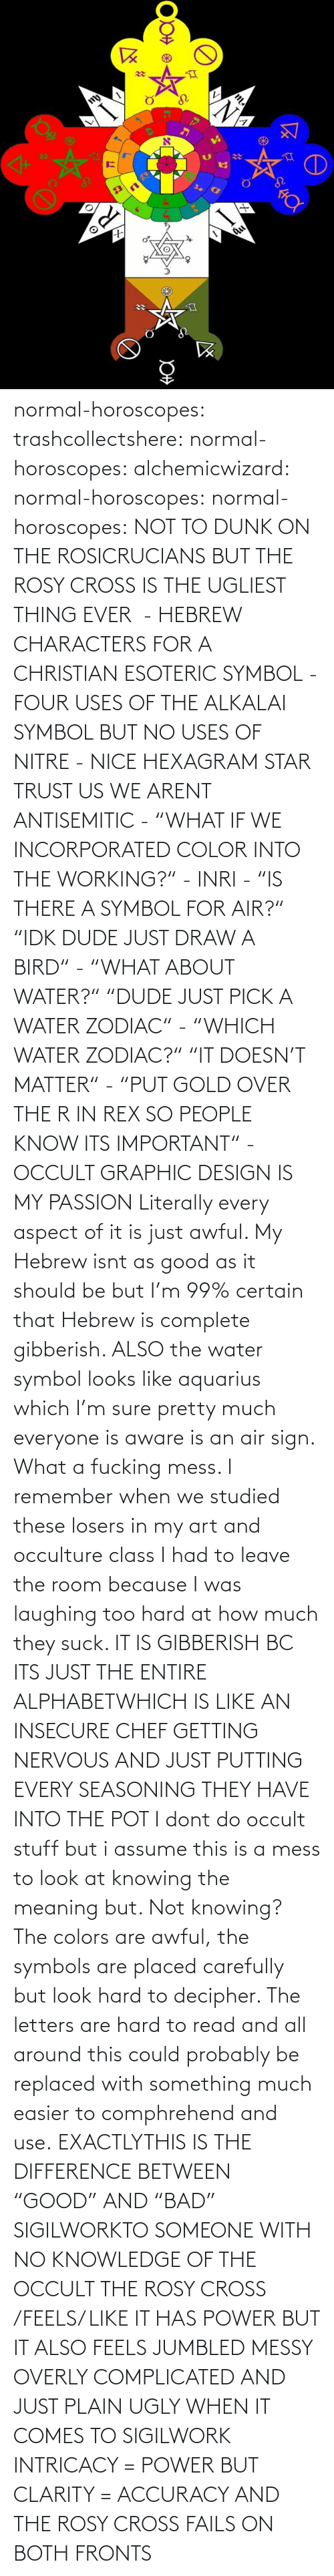 "Meaning: normal-horoscopes:  trashcollectshere: normal-horoscopes:   alchemicwizard:  normal-horoscopes:  normal-horoscopes: NOT TO DUNK ON THE ROSICRUCIANS BUT THE ROSY CROSS IS THE UGLIEST THING EVER  - HEBREW CHARACTERS FOR A CHRISTIAN ESOTERIC SYMBOL - FOUR USES OF THE ALKALAI SYMBOL BUT NO USES OF NITRE - NICE HEXAGRAM STAR TRUST US WE ARENT ANTISEMITIC - ""WHAT IF WE INCORPORATED COLOR INTO THE WORKING?"" - INRI - ""IS THERE A SYMBOL FOR AIR?"" ""IDK DUDE JUST DRAW A BIRD"" - ""WHAT ABOUT WATER?"" ""DUDE JUST PICK A WATER ZODIAC"" - ""WHICH WATER ZODIAC?"" ""IT DOESN'T MATTER"" - ""PUT GOLD OVER THE R IN REX SO PEOPLE KNOW ITS IMPORTANT"" - OCCULT GRAPHIC DESIGN IS MY PASSION  Literally every aspect of it is just awful. My Hebrew isnt as good as it should be but I'm 99% certain that Hebrew is complete gibberish.  ALSO the water symbol looks like aquarius which I'm sure pretty much everyone is aware is an air sign. What a fucking mess.  I remember when we studied these losers in my art and occulture class I had to leave the room because I was laughing too hard at how much they suck.   IT IS GIBBERISH BC ITS JUST THE ENTIRE ALPHABETWHICH IS LIKE AN INSECURE CHEF GETTING NERVOUS AND JUST PUTTING EVERY SEASONING THEY HAVE INTO THE POT     I dont do occult stuff but i assume this is a mess to look at knowing the meaning but. Not knowing? The colors are awful, the symbols are placed carefully but look hard to decipher. The letters are hard to read and all around this could probably be replaced with something much easier to comphrehend and use.  EXACTLYTHIS IS THE DIFFERENCE BETWEEN ""GOOD"" AND ""BAD"" SIGILWORKTO SOMEONE WITH NO KNOWLEDGE OF THE OCCULT THE ROSY CROSS /FEELS/ LIKE IT HAS POWER BUT IT ALSO FEELS JUMBLED MESSY OVERLY COMPLICATED AND JUST PLAIN UGLY WHEN IT COMES TO SIGILWORK INTRICACY = POWER BUT CLARITY = ACCURACY AND THE ROSY CROSS FAILS ON BOTH FRONTS"